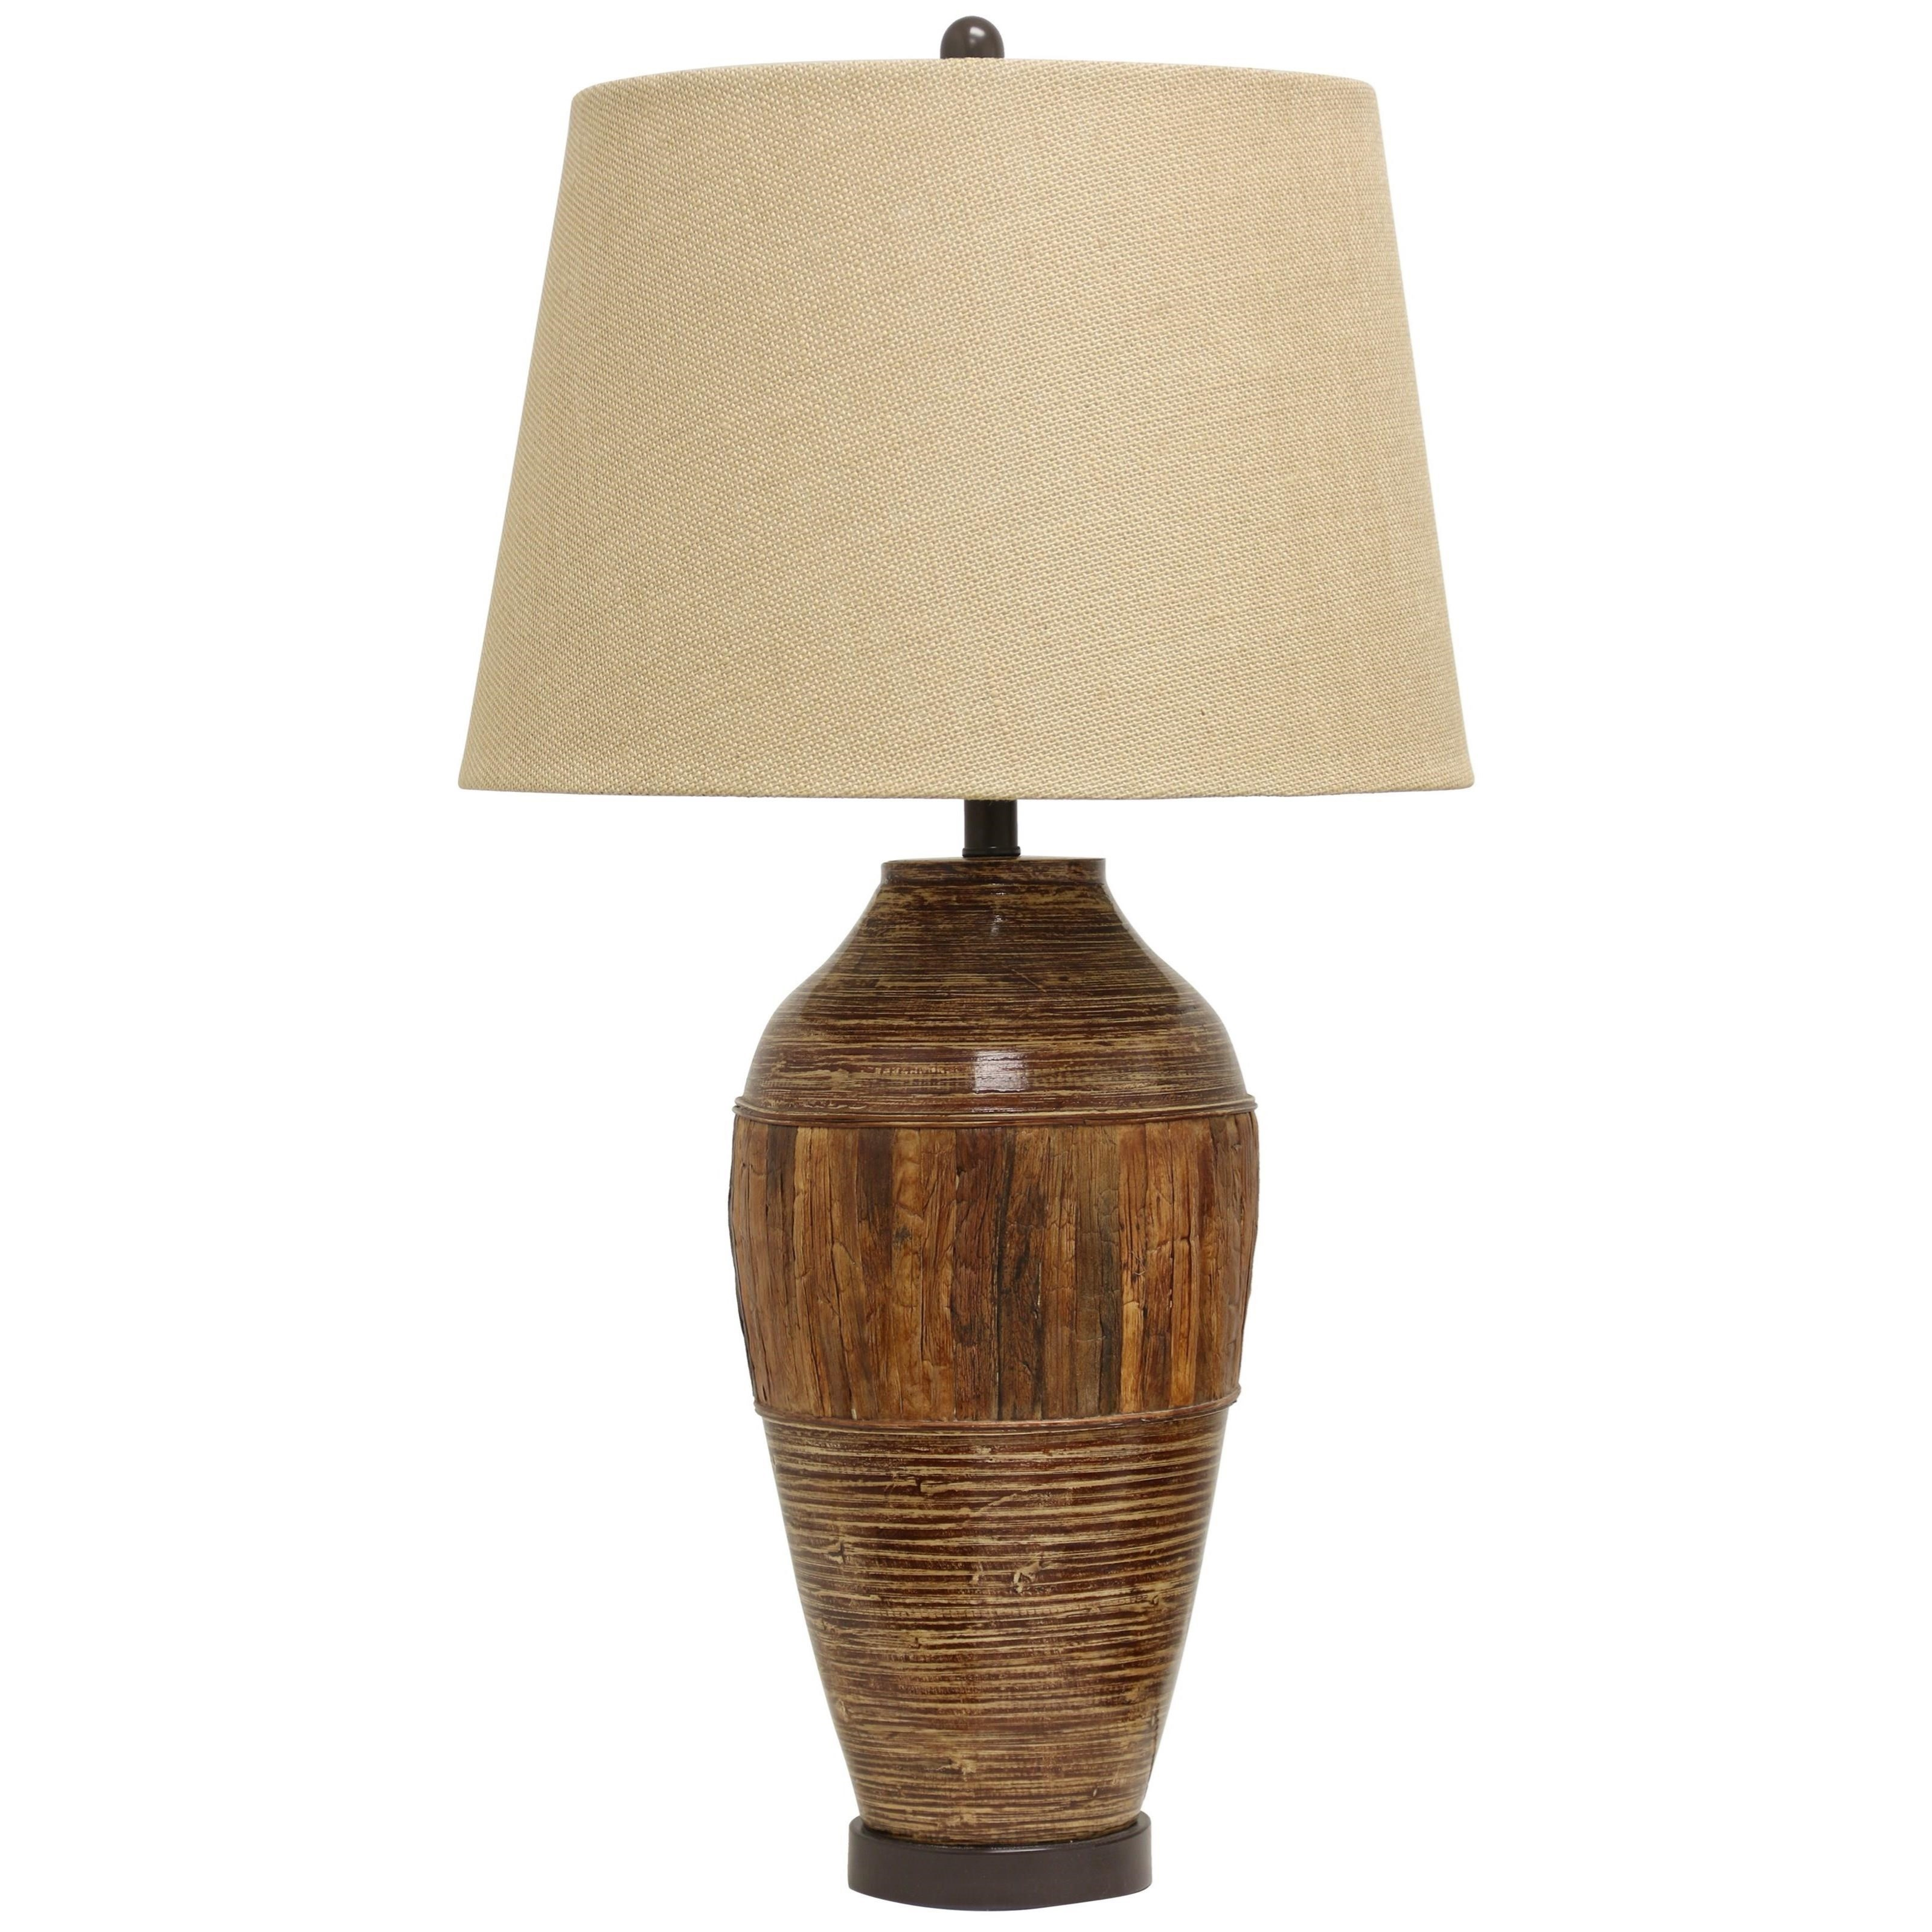 Lamps Bamboo and Water Hyacinth Table Lamp by StyleCraft at Wilcox Furniture